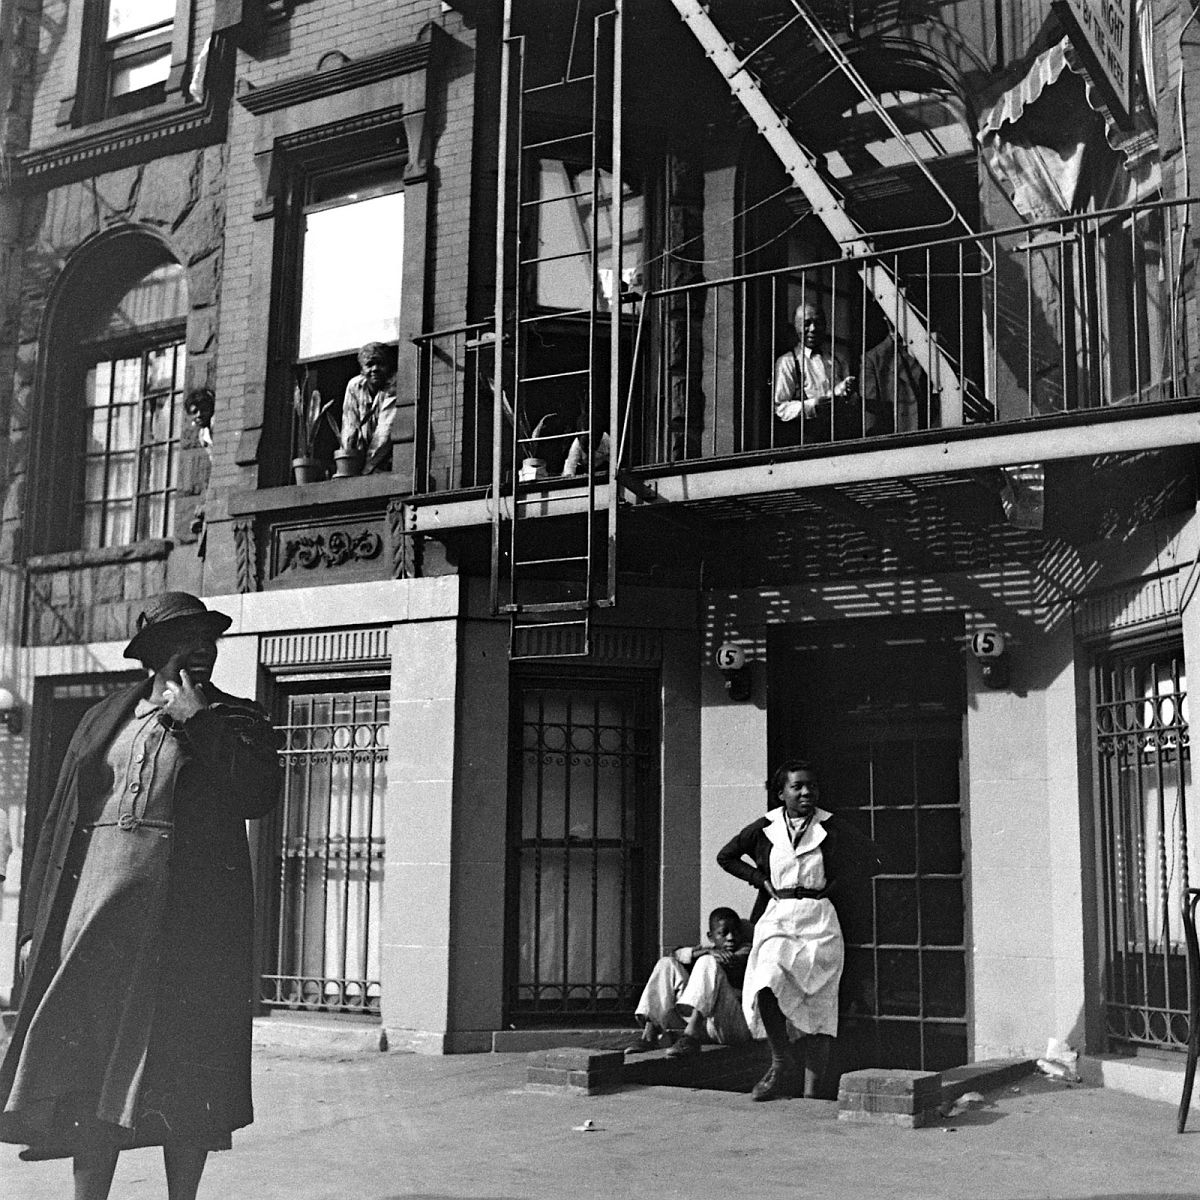 Harlem residents look on at an event taking place just outside the frame, 1938.